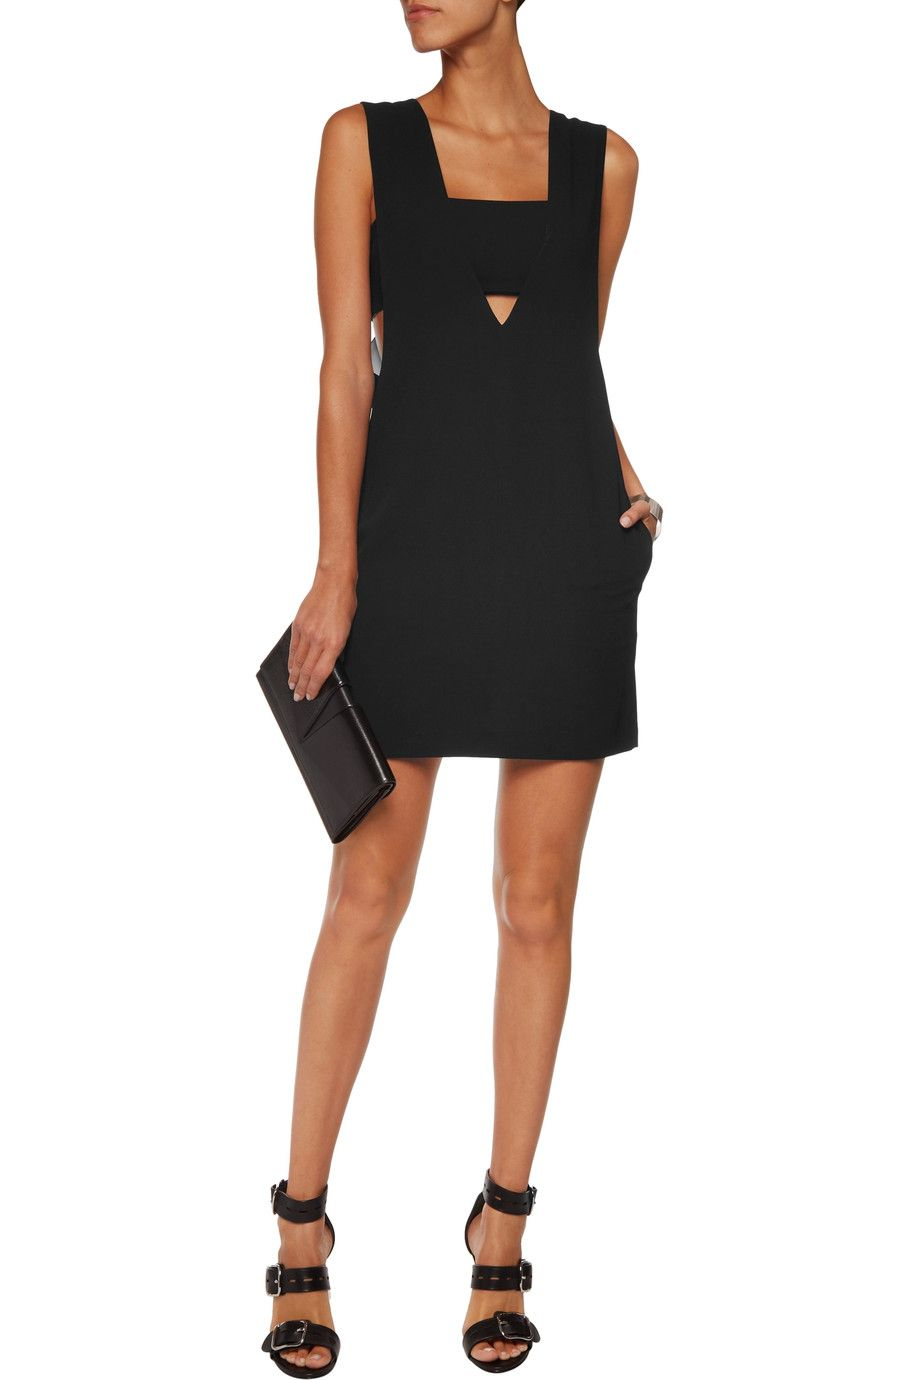 0f63498744 Shop on-sale T by Alexander Wang Cutout crepe mini dress. Browse other discount  designer Dresses & more on The Most Fashionable Fashion Outlet, THE OUTNET.